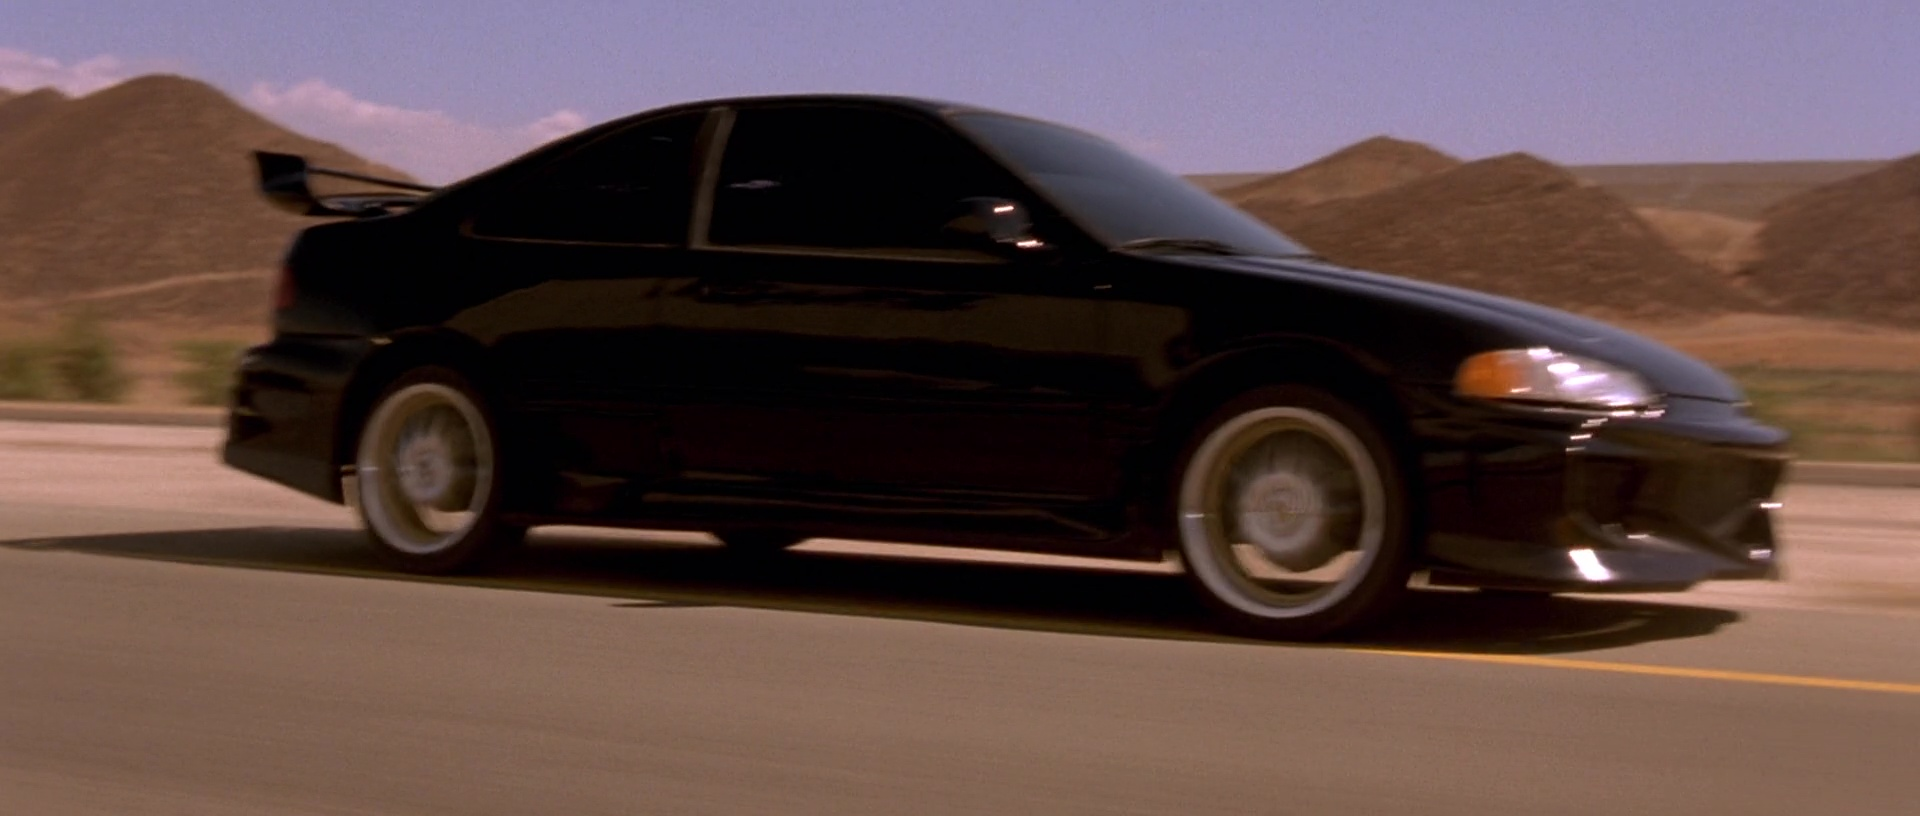 Image - Honda Civic - Side View.jpg | The Fast and the Furious Wiki